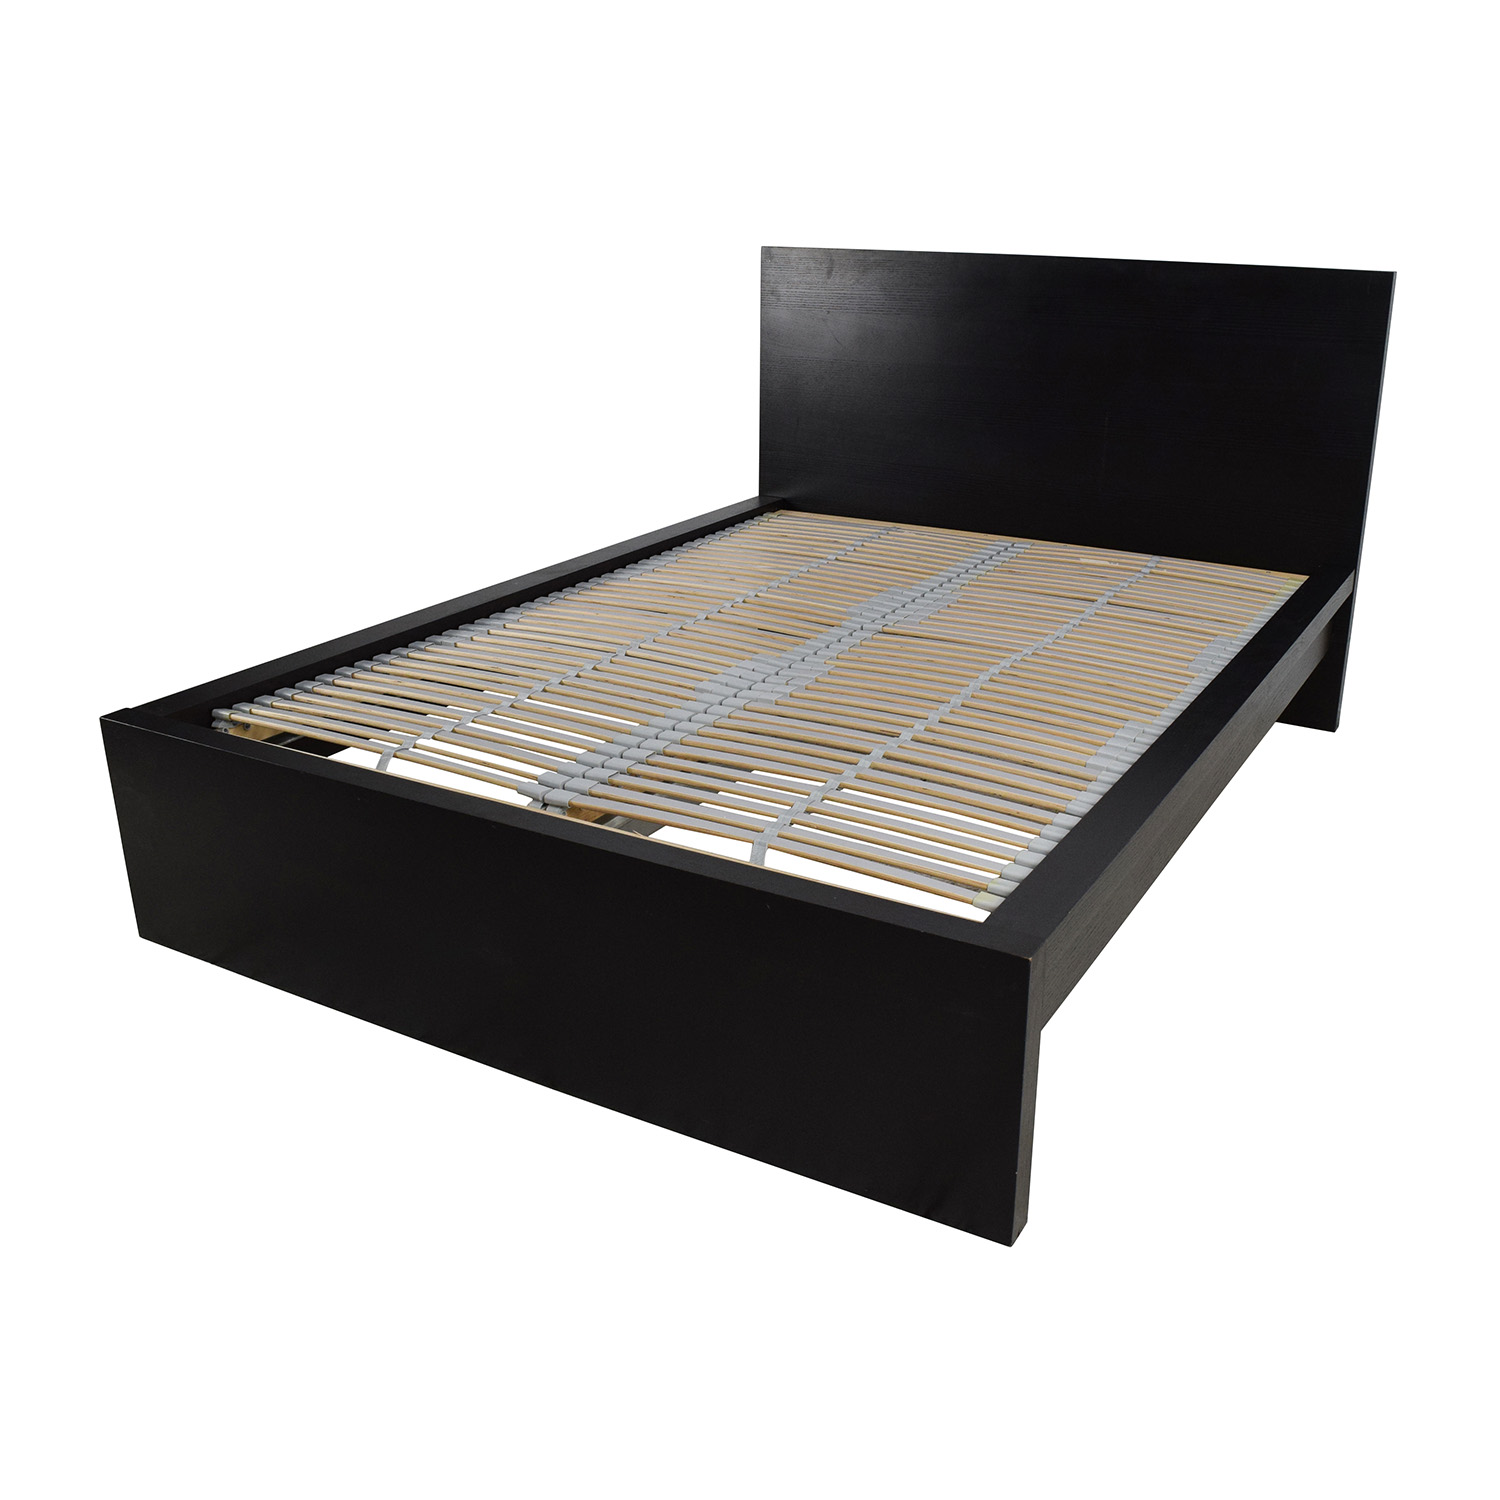 77 off ikea ikea full bed frame with adjustable slats for Ikea mattress frame